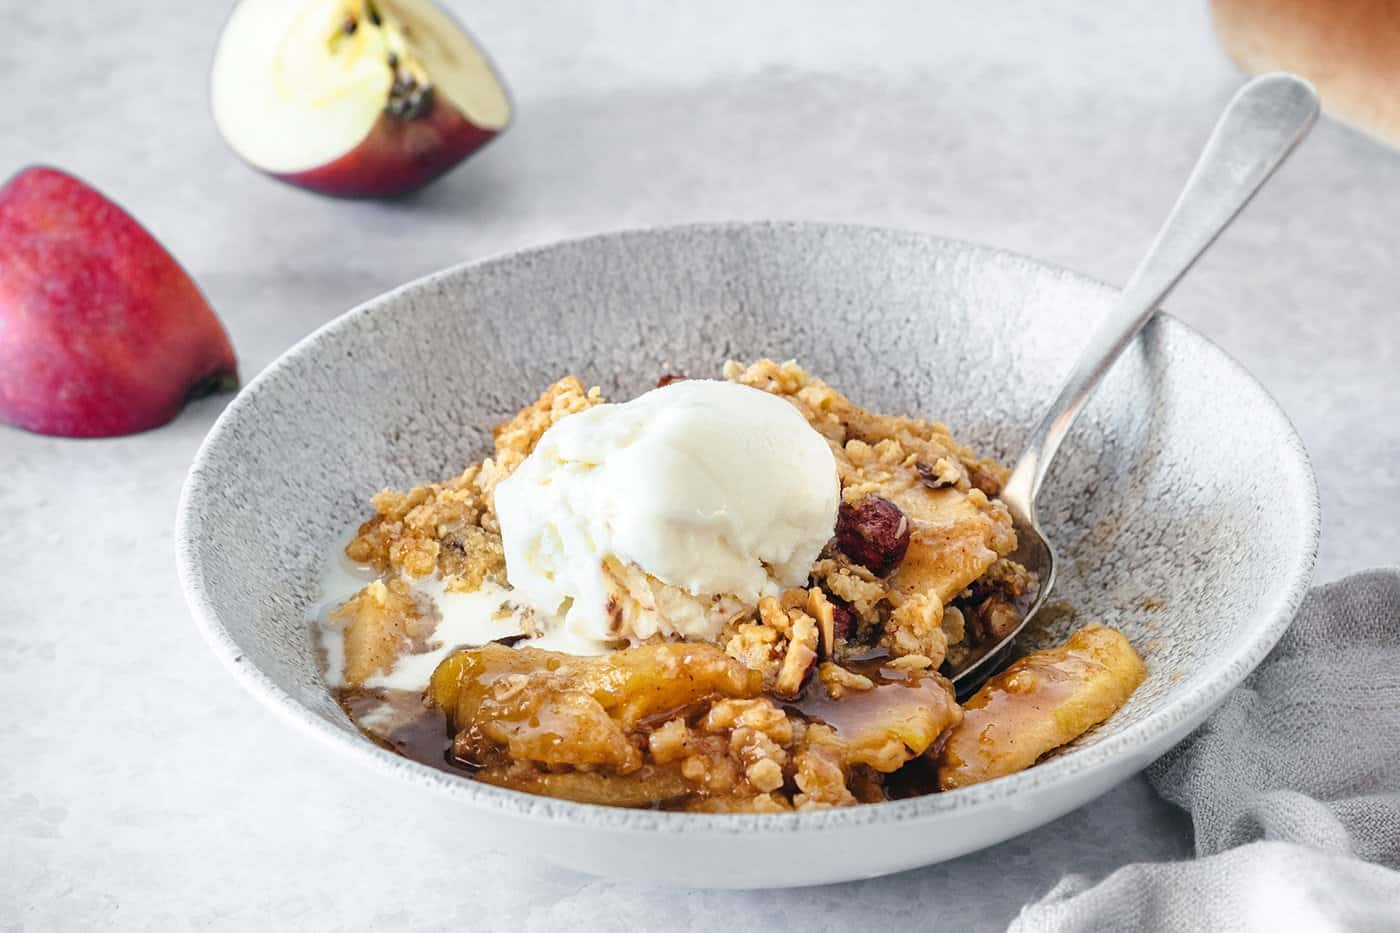 apple crisp with caramel and almond in a low wide gray bowl, plus a scoop of vanilla ice cream